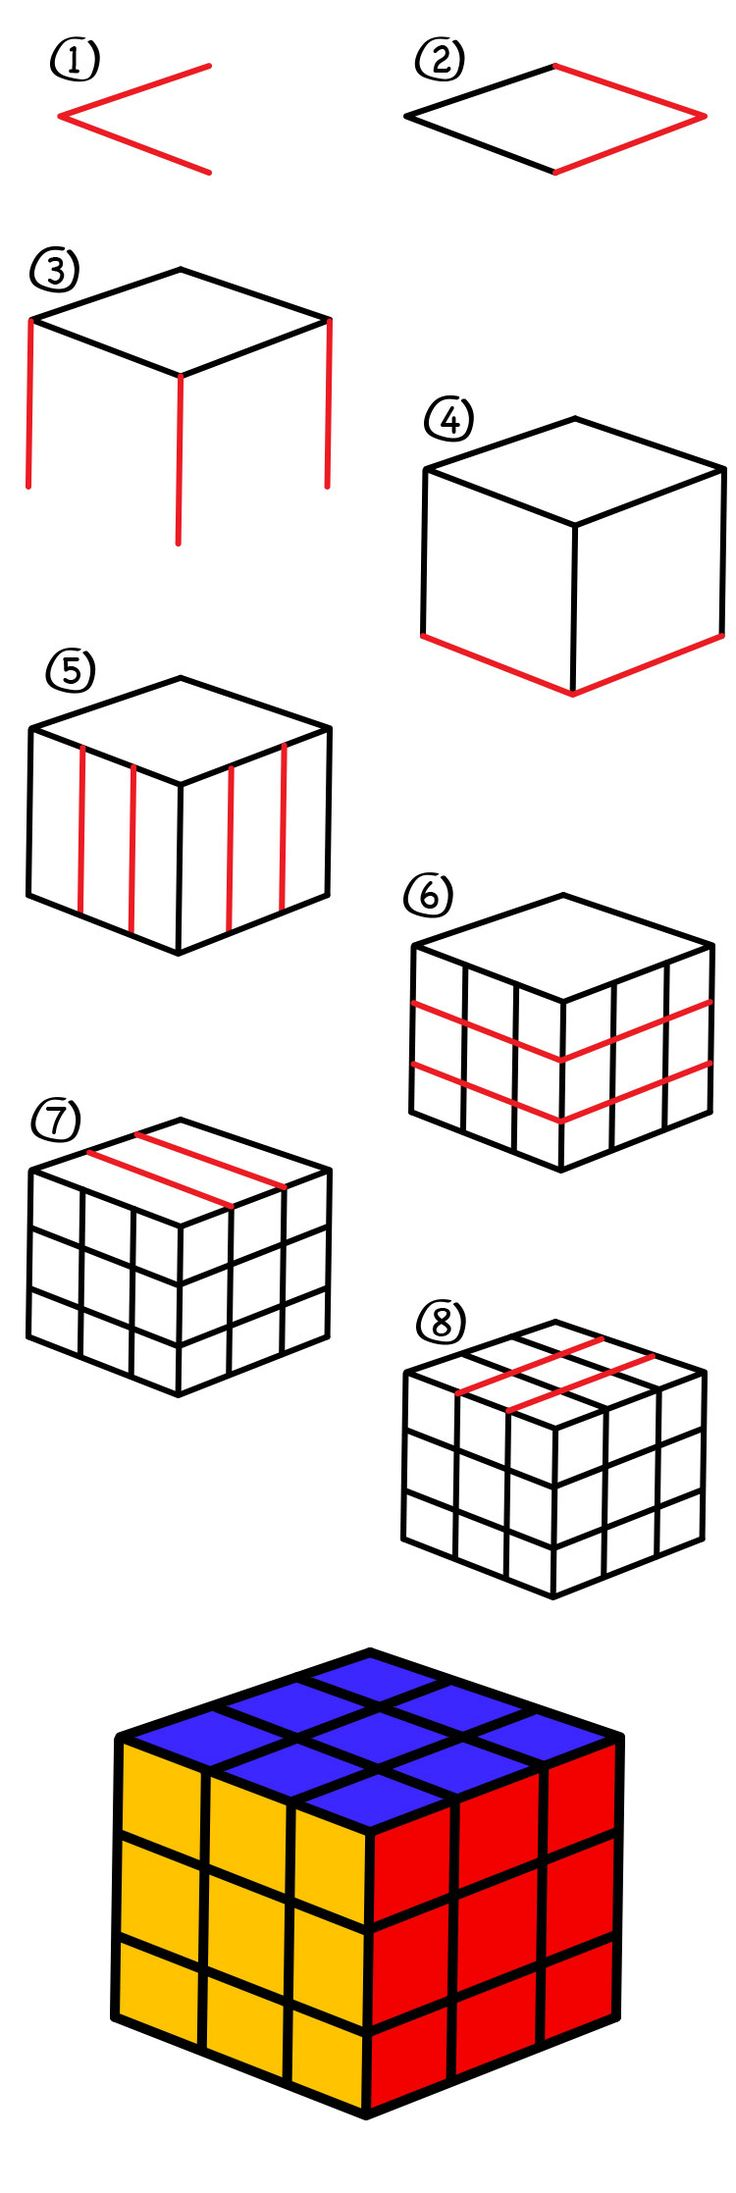 Learn how to draw a Rubik's Cube. The Rubik's Cube has always been one of my favorite toys. I could always solve one or two sides, but never the whole thing. Did you know you can learn how to solve the Rubik's Cube on their official website? It's true! After your child finishes drawing with …